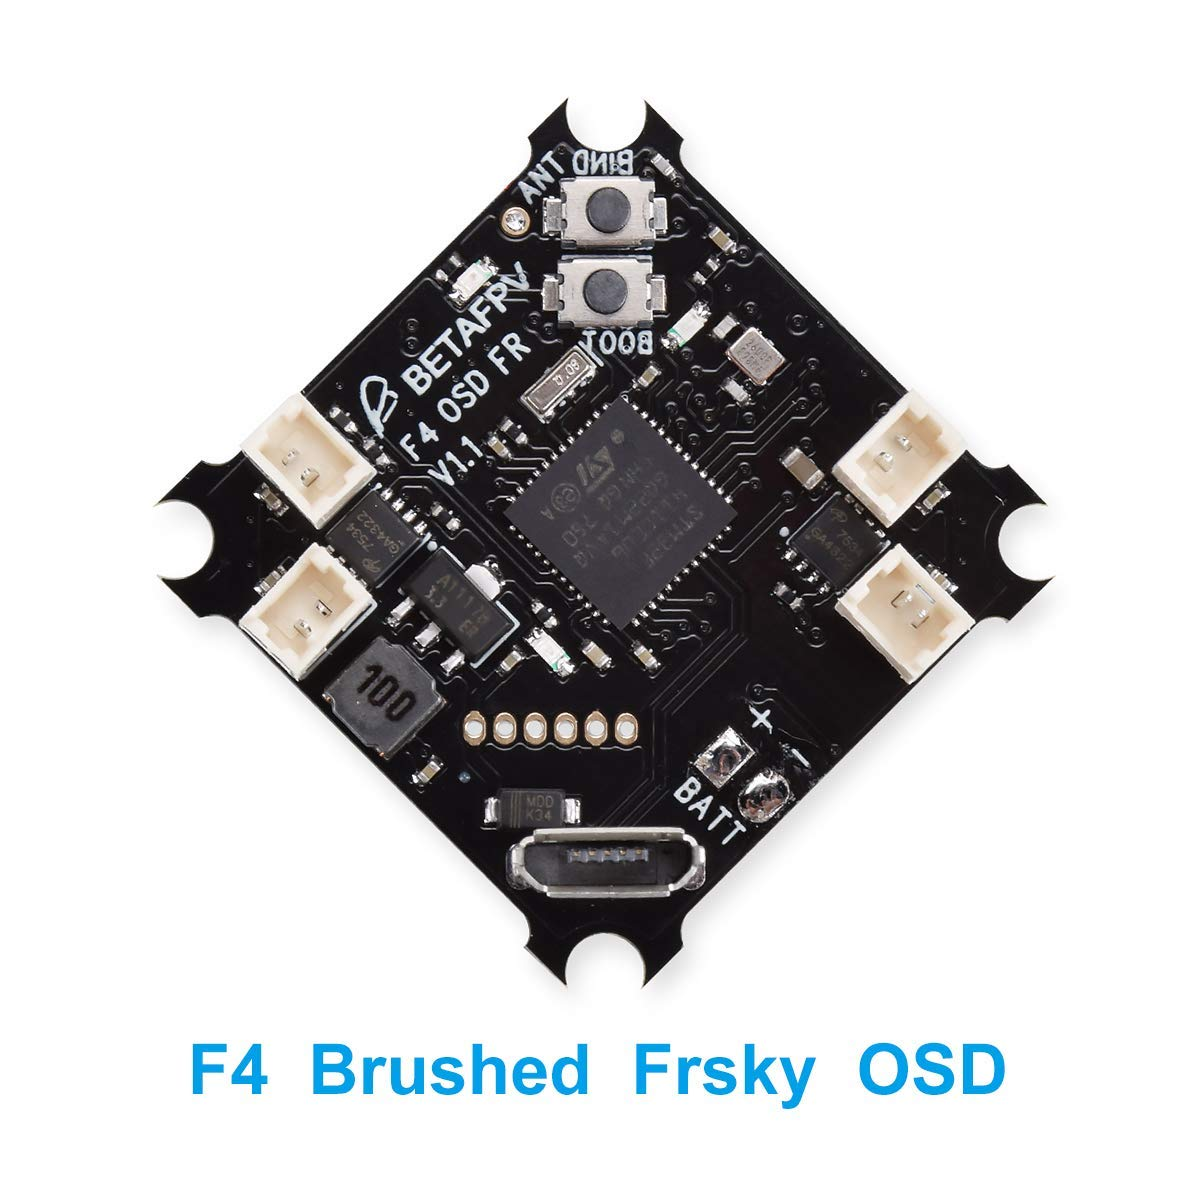 BETAFPV F4 FC Brushed Flight Controller with SPI Frsky Receiver Betaflight OSD Smart Audio for Tiny Whoop Micro Racing Drone micro minimosd minim osd mini osd w kv team mod for racing f3 naze32 flight controller